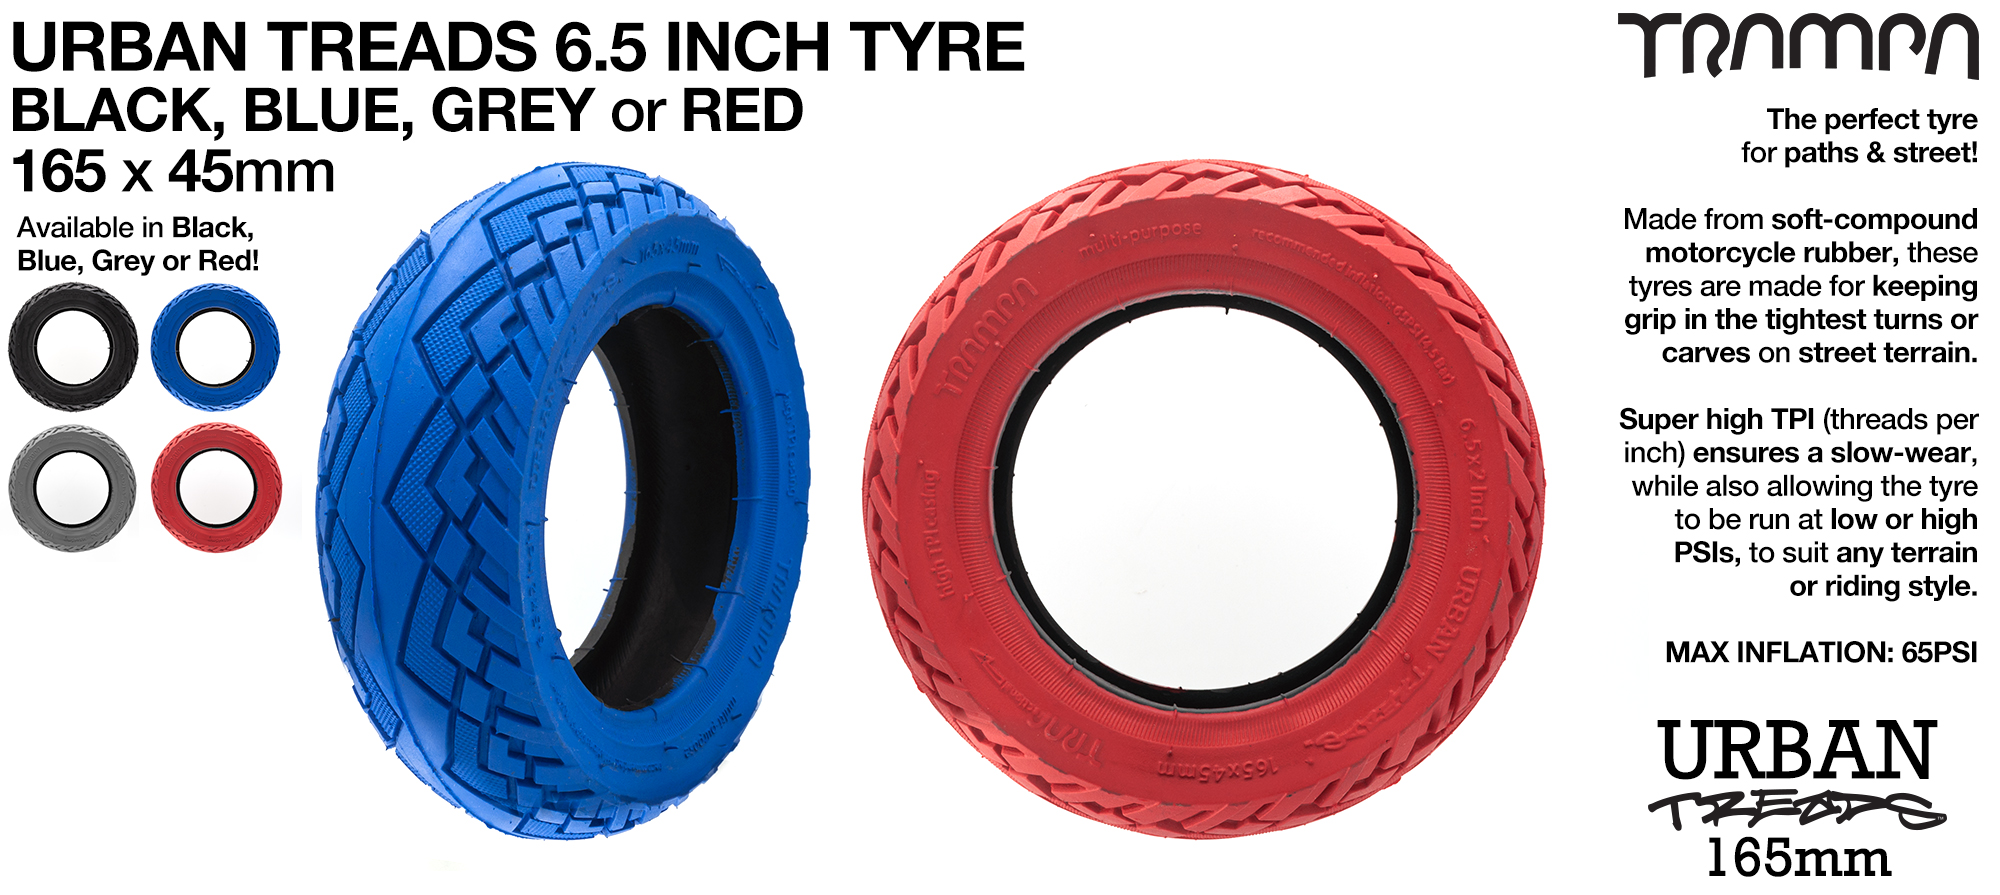 6 Inch Tyre TRAMPA URBAN TREADS is the perfect all round tyre for Urban & City riding